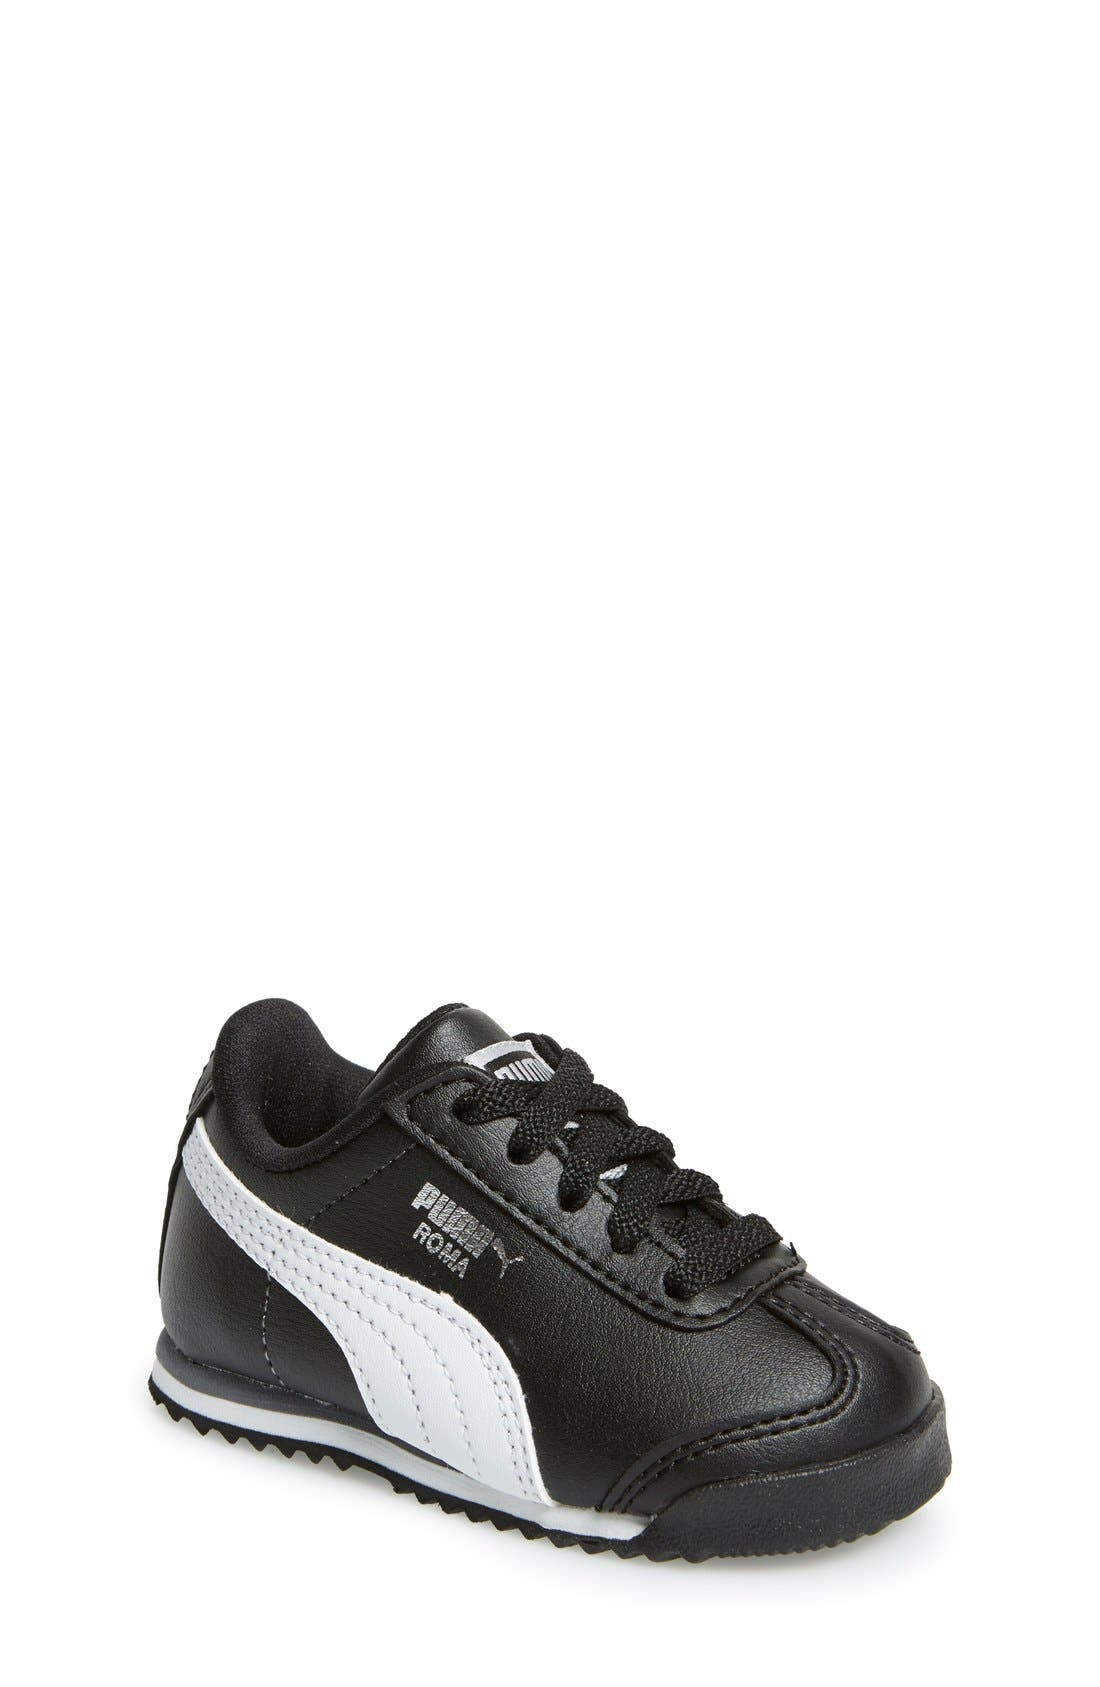 Main Image - PUMA 'Roma' Sneaker (Baby, Walker, Toddler, Little Kid & Big Kid)